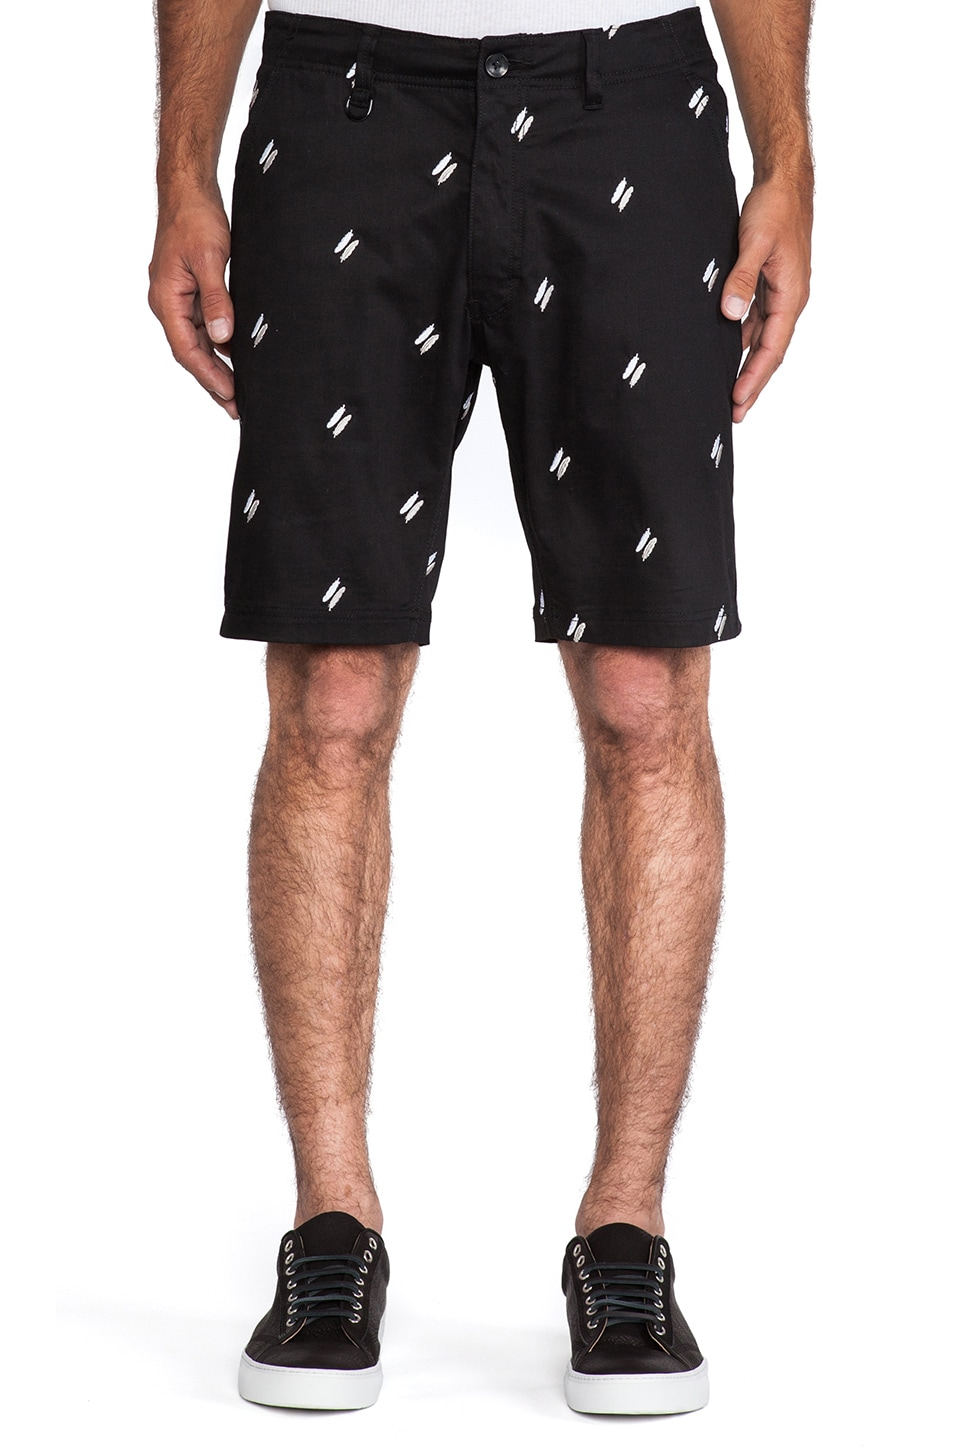 Publish Baylor Short in Black